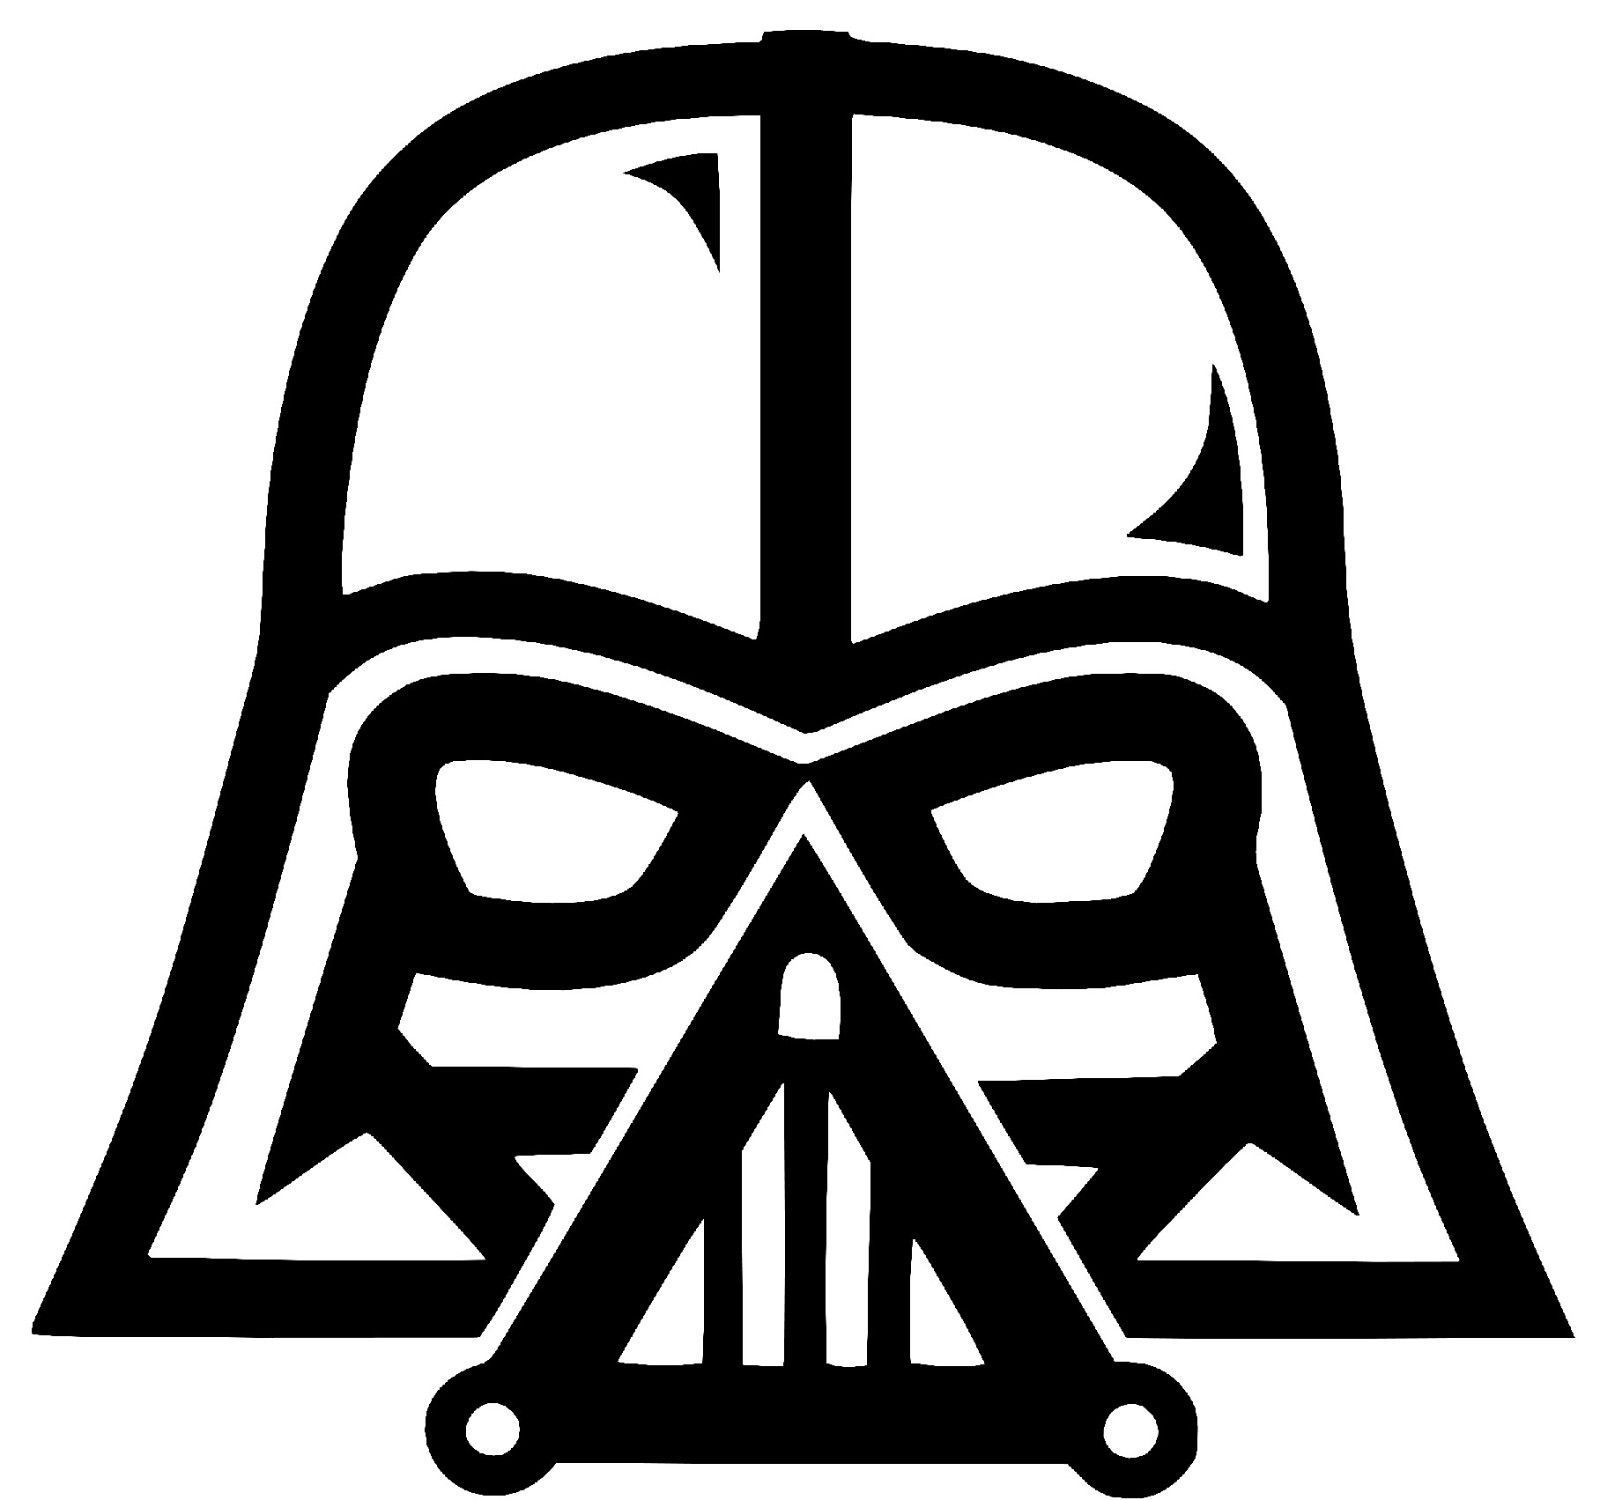 Darth Vader Made With High Quality Oracal 631 Vinyl The Industry Standard For Vinyl Vinyl Decal Decal Is Measured By Th Star Wars Car Stickers Vinyl Decals [ jpg ]